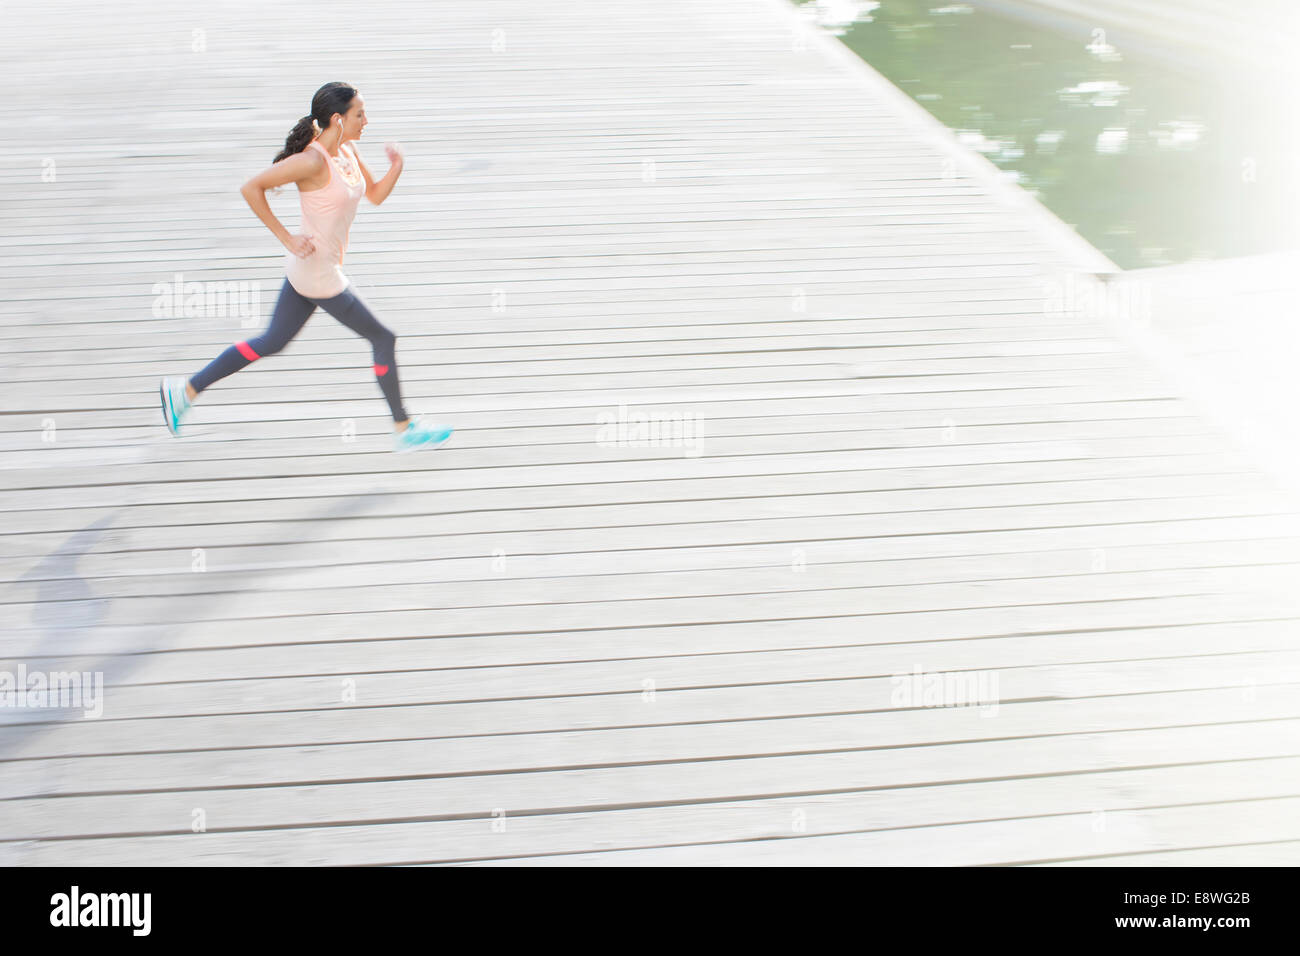 Woman running through city streets - Stock Image